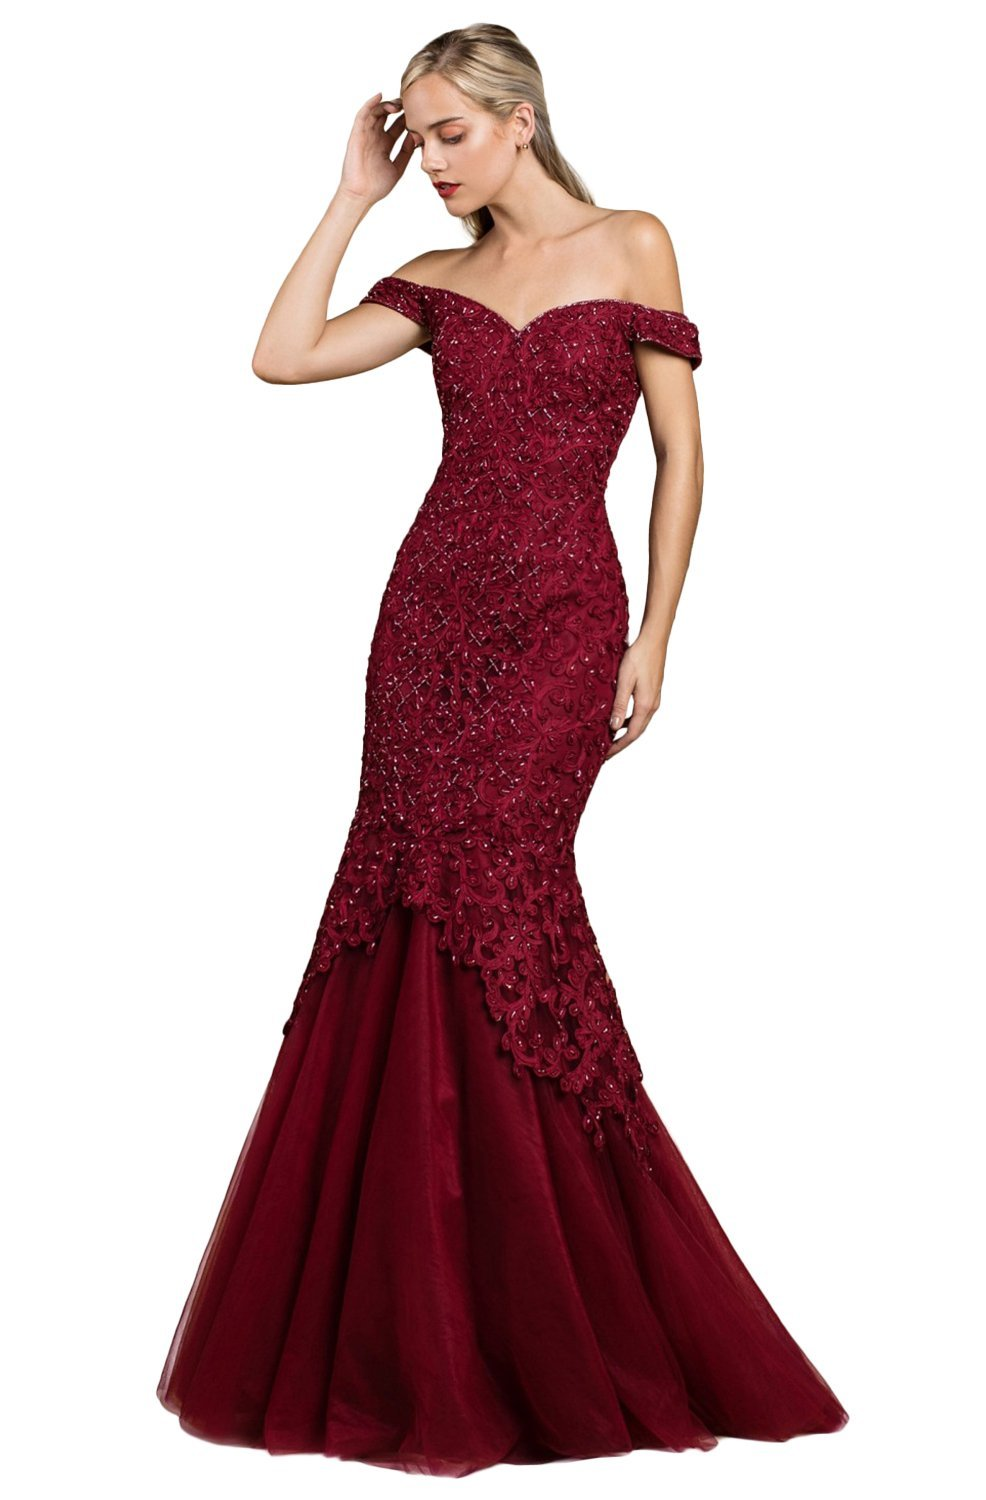 Cinderella Divine - A0401 Off Shoulder Lace Overlay Tulle Mermaid Gown In Red